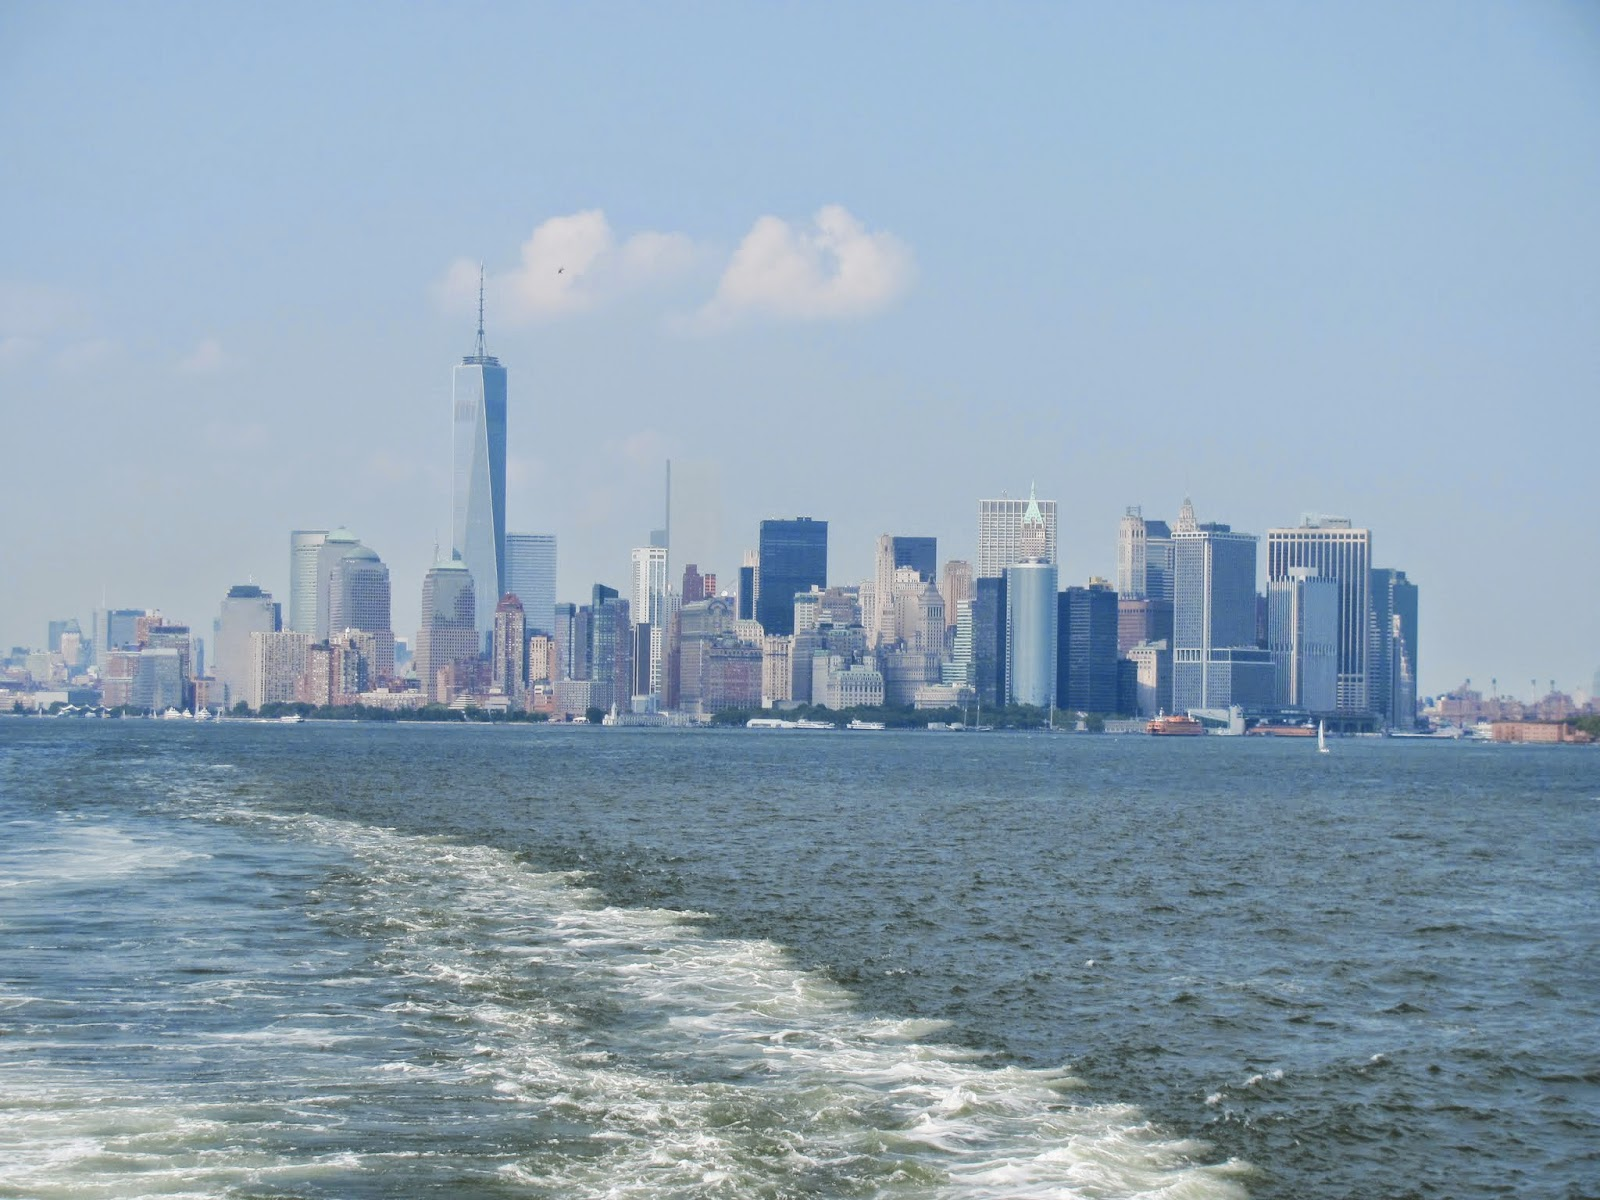 Lower Manhattan from said Free Ferry